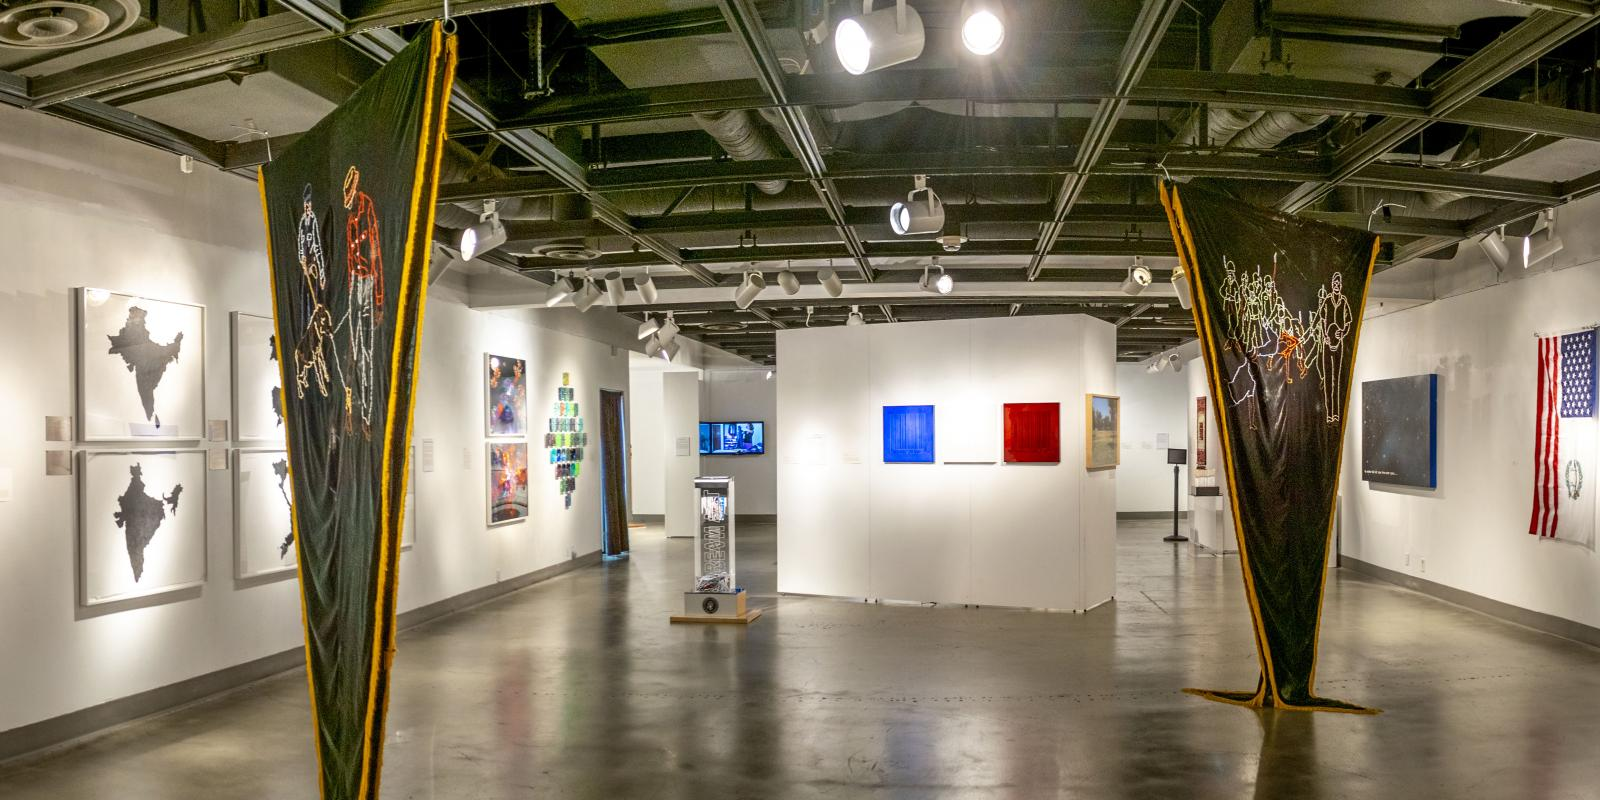 Back westside view of the gallery, Exhibition: Somewhere In Between, Nov 6, 2018 - Mar 17, 2019,  Co-curated by Michele Cairella Fillmore & Bia Gayotto, W. Keith & Janet Kellogg Art Gallery, Cal Poly Pomona.